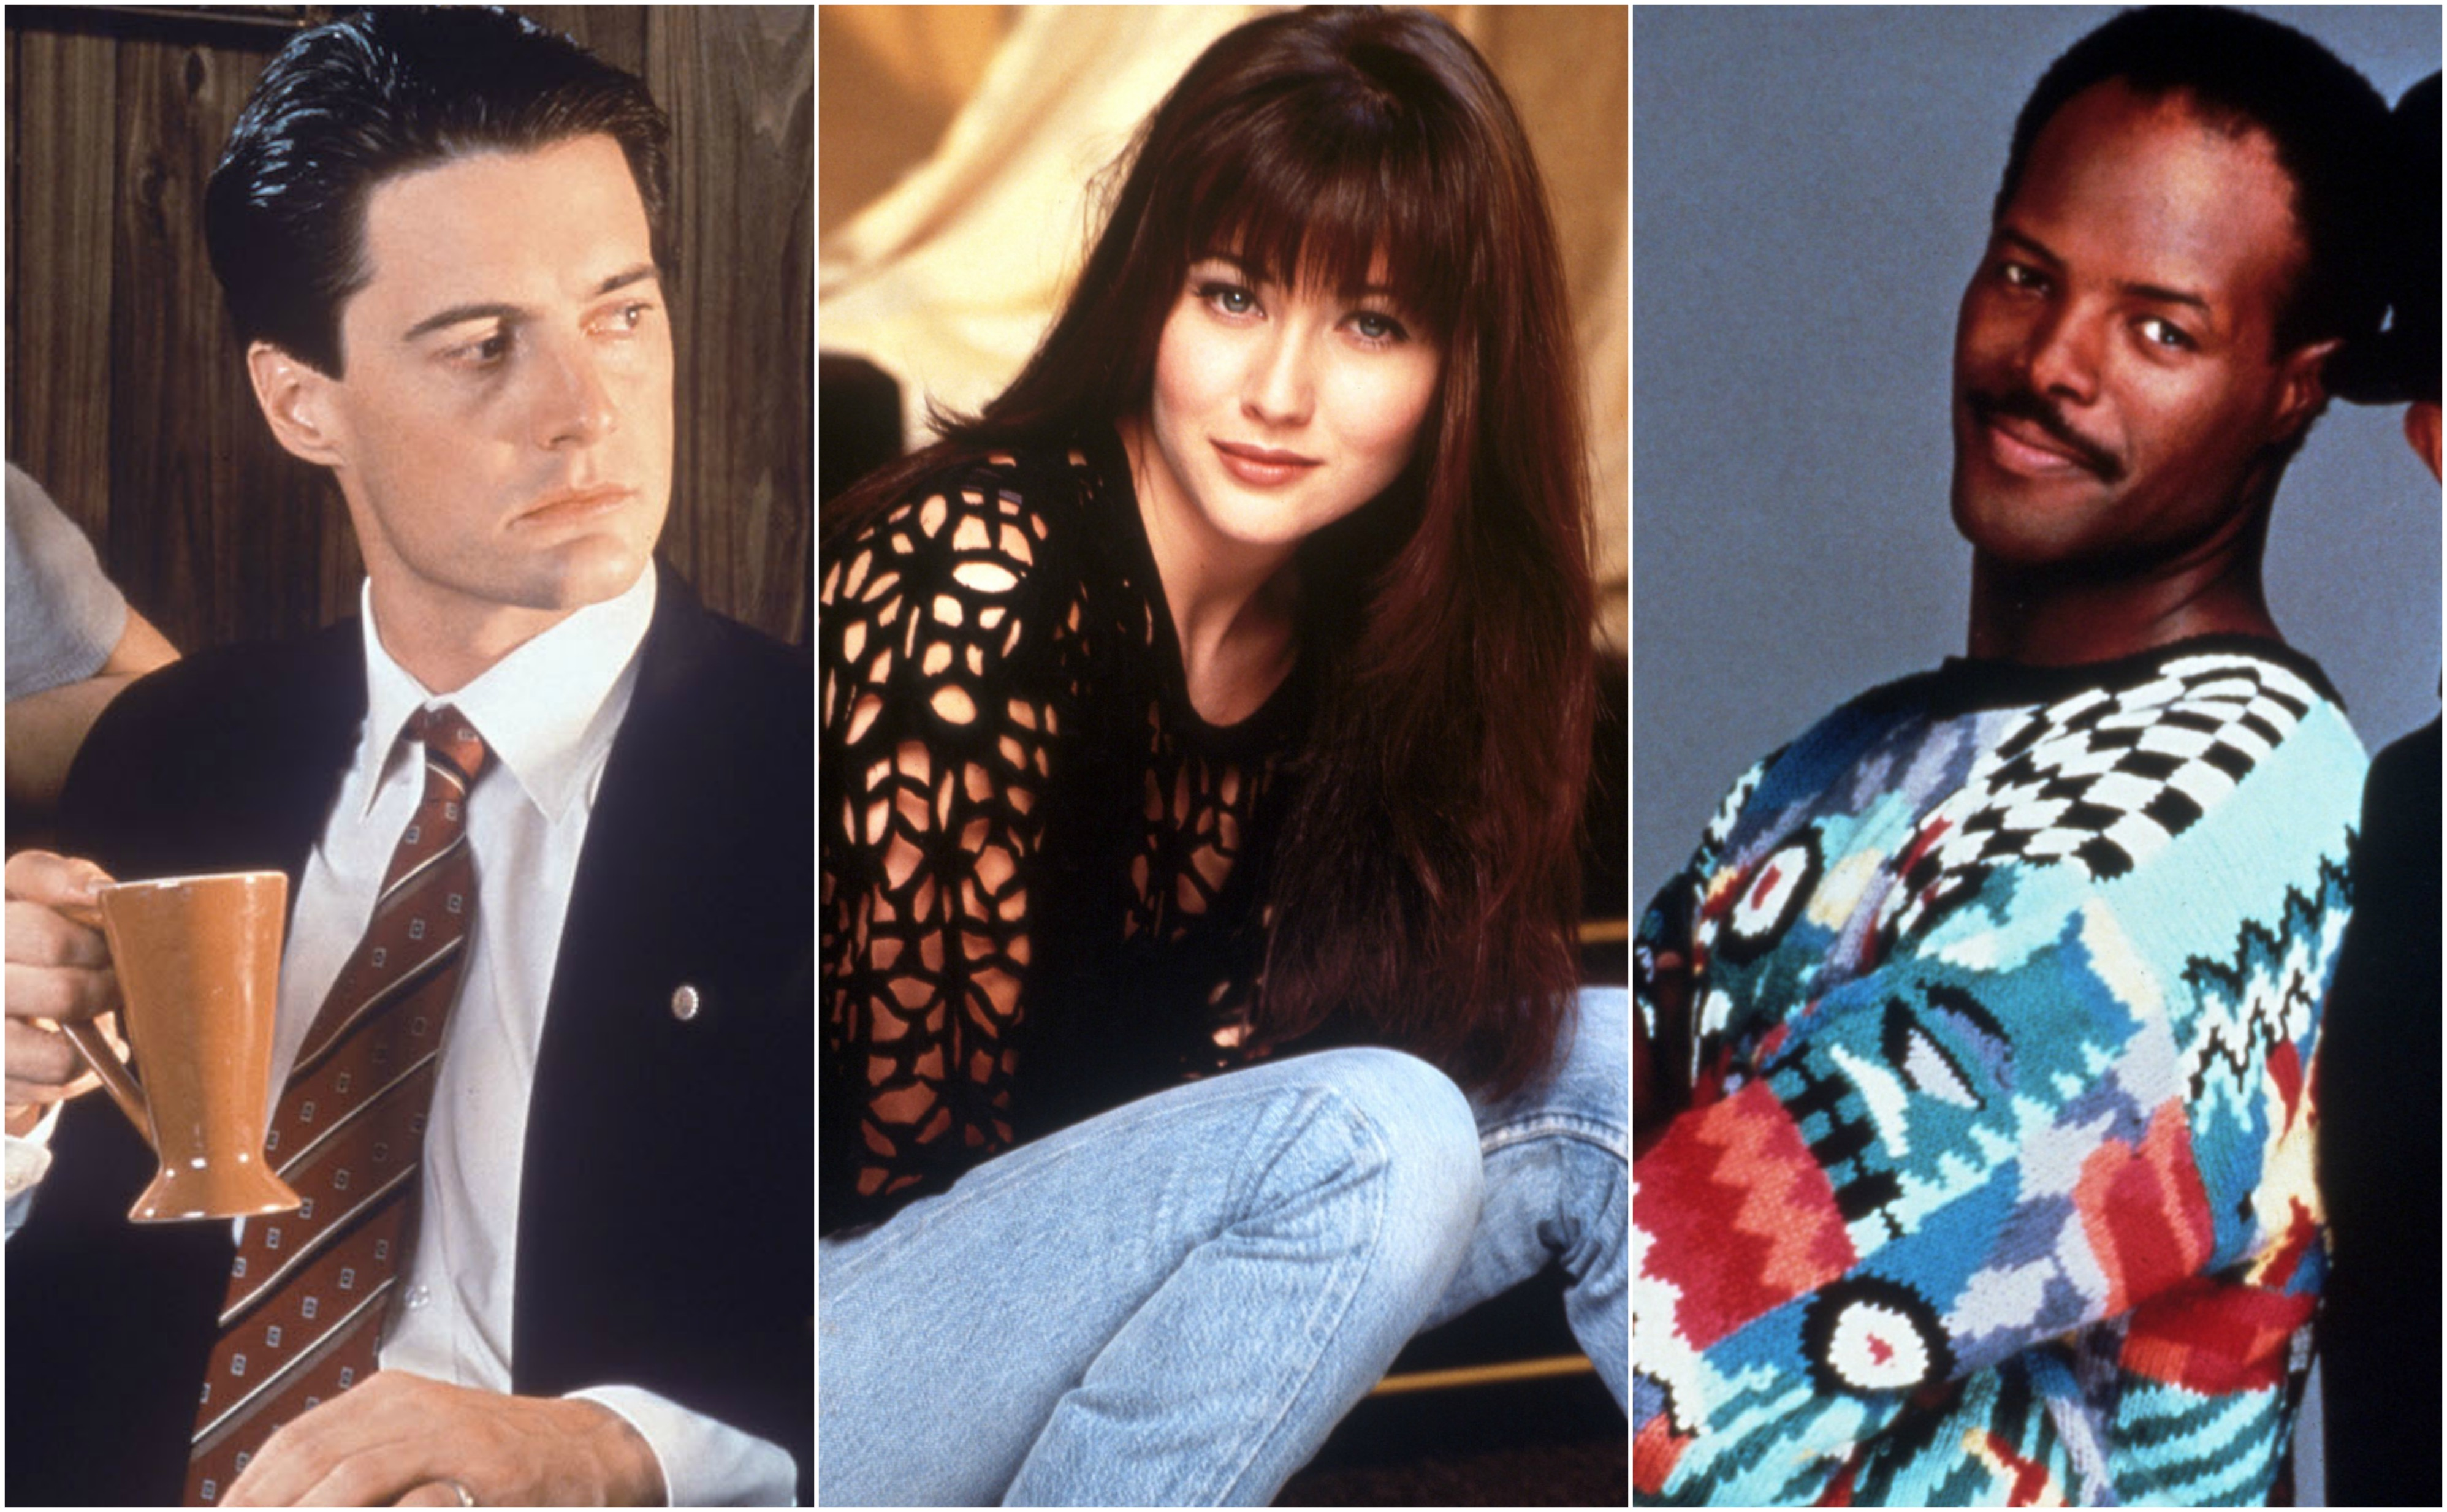 Adam Sandler Cosby Show 90s tv shows rewind: 9 new series that defined 1990 | indiewire